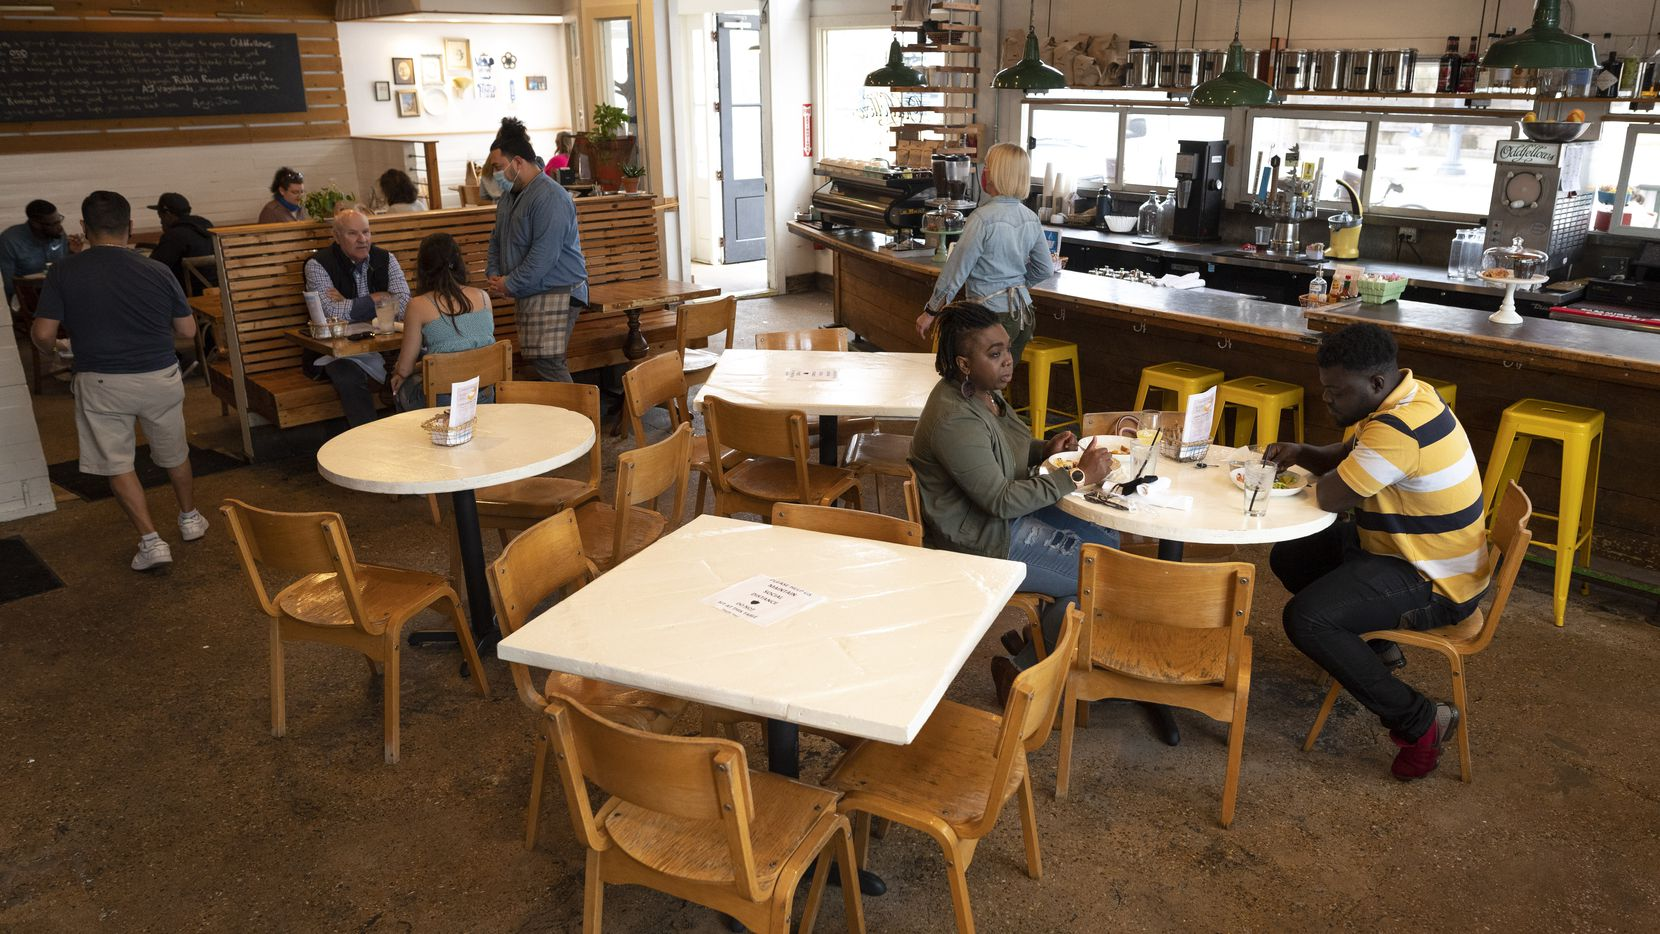 Shanita Brown (right) and James Quayson, 31 (far-right(, have lunch inside Oddfellows restaurant at the Bishop Arts District in Dallas on the first day the mask mandate and occupancy limits are lifted. Oddfellows is still operating at 75% capacity and all employees must wear face masks.